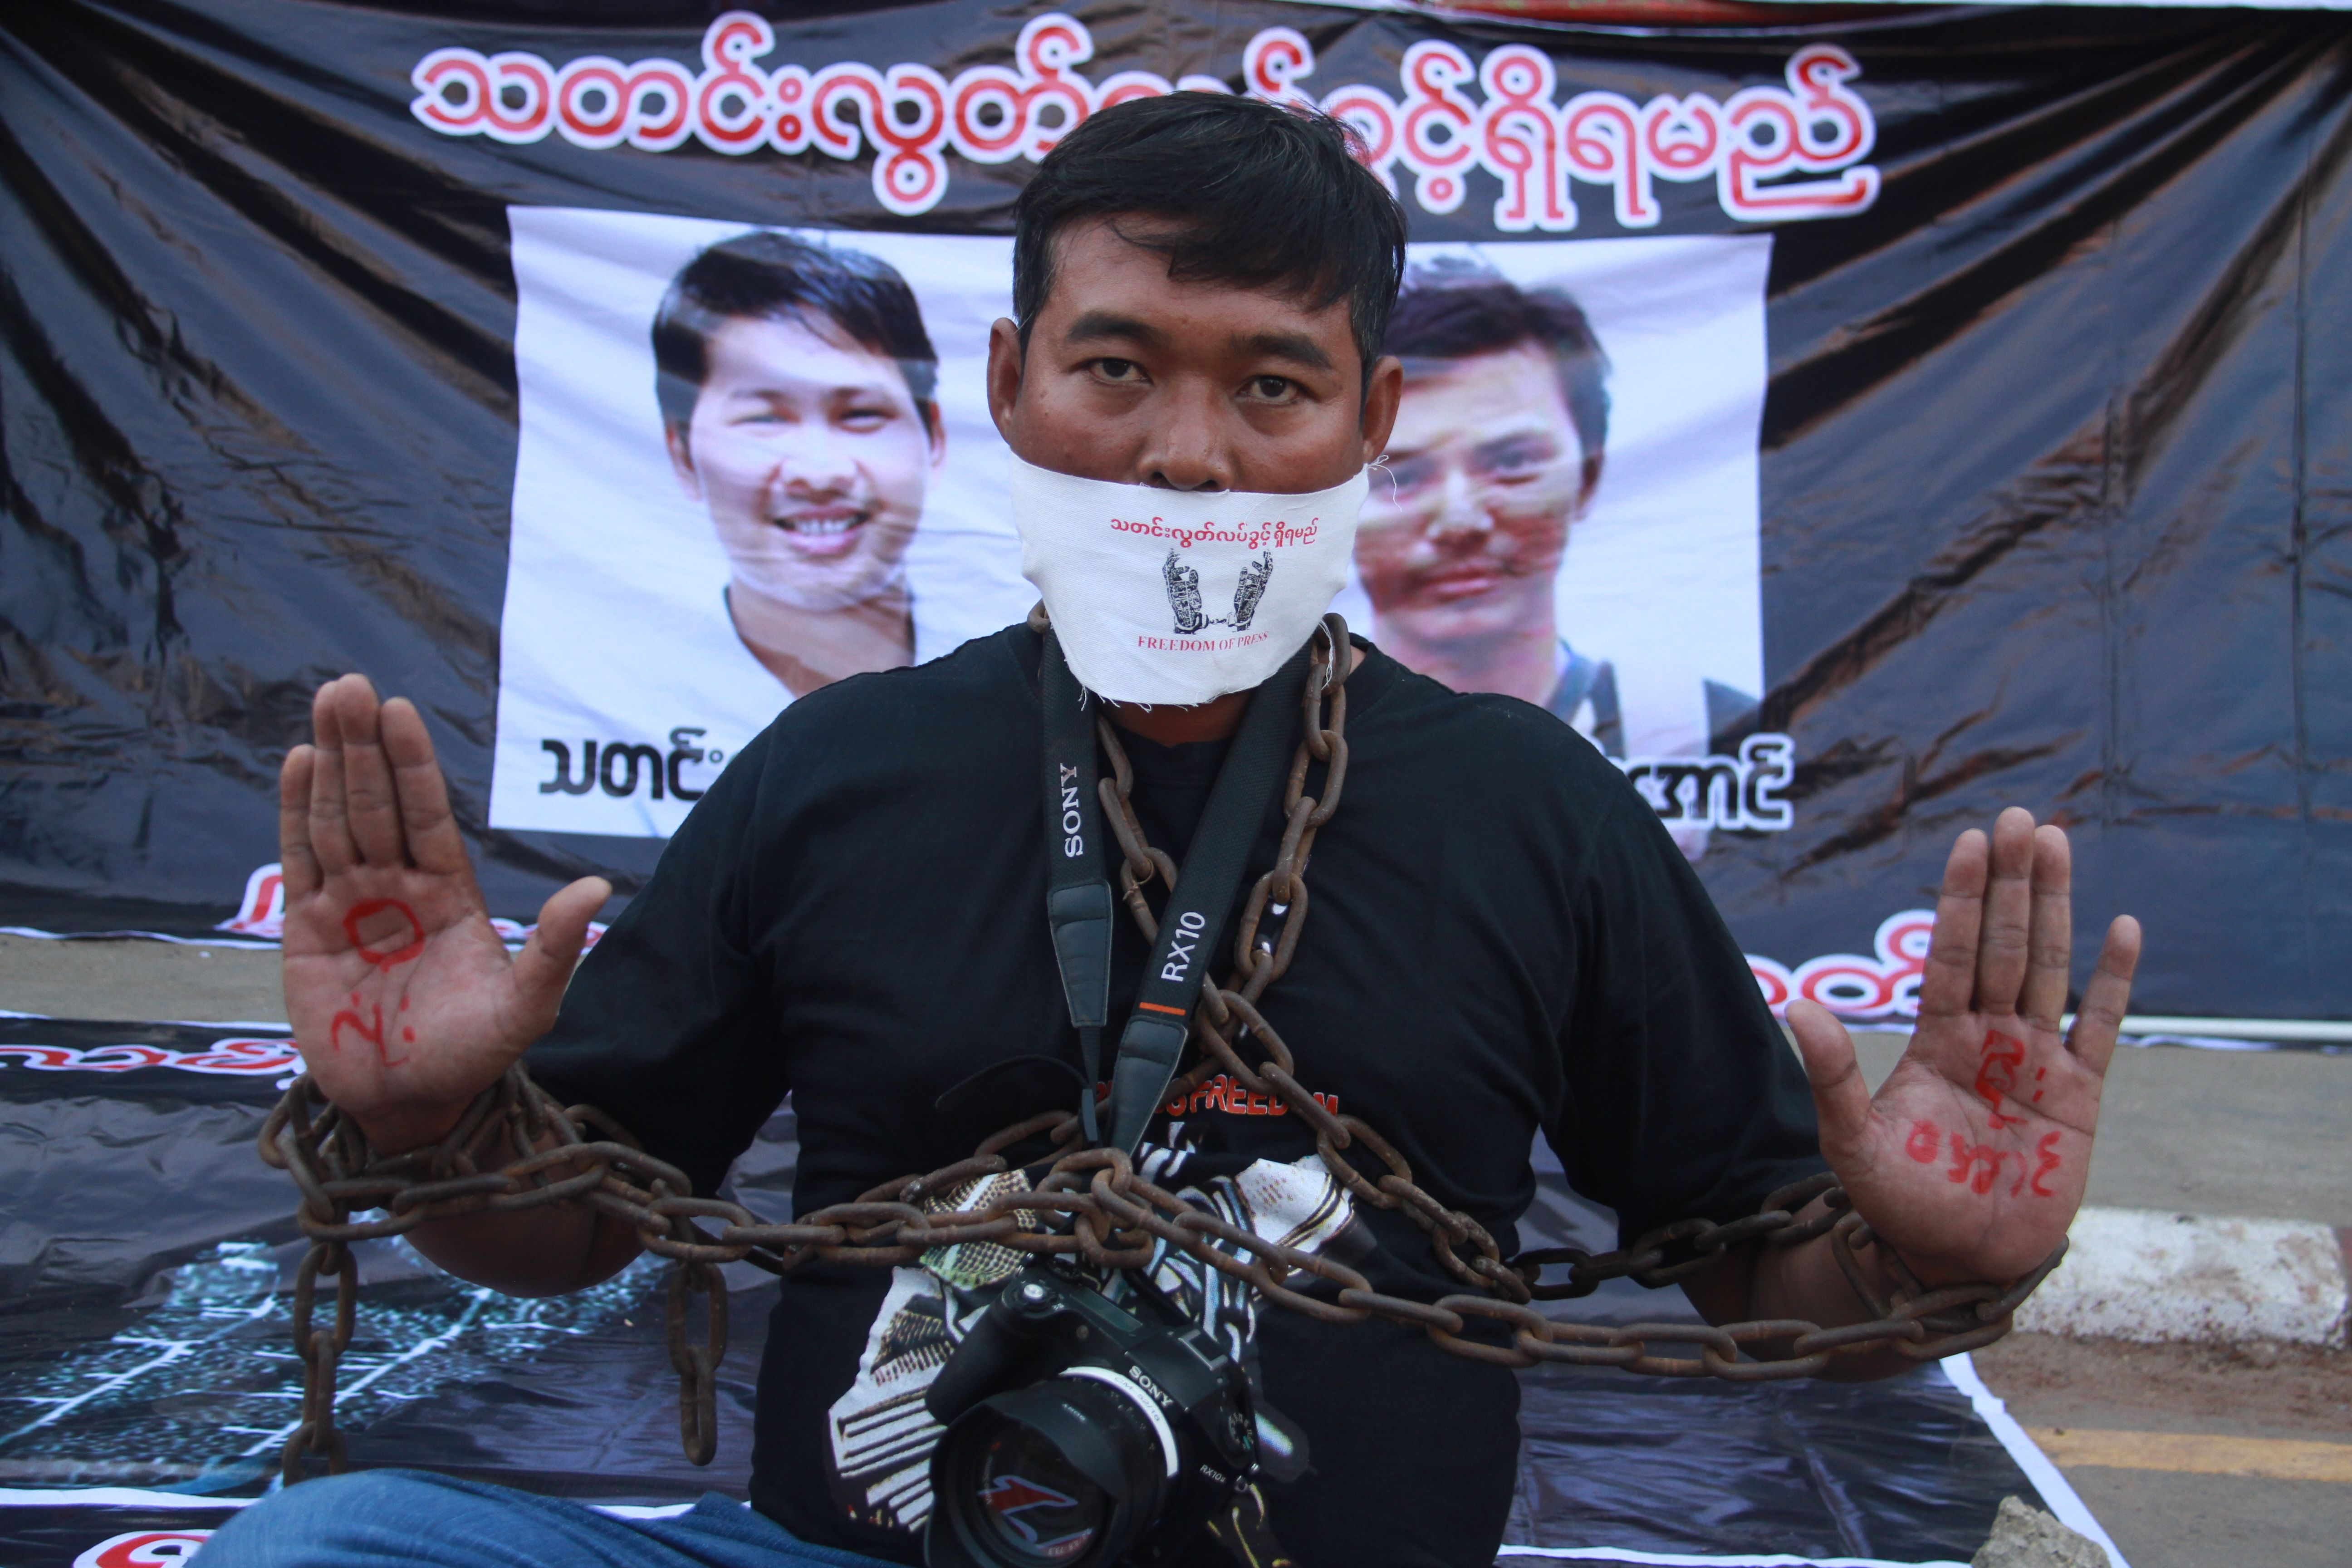 A journalist protests the arrest of Reuters journalists Wa Lone and Kyaw Soe Oo (pictured in posters behind) in Pyay, Myanmar on Dec. 27, 2017.